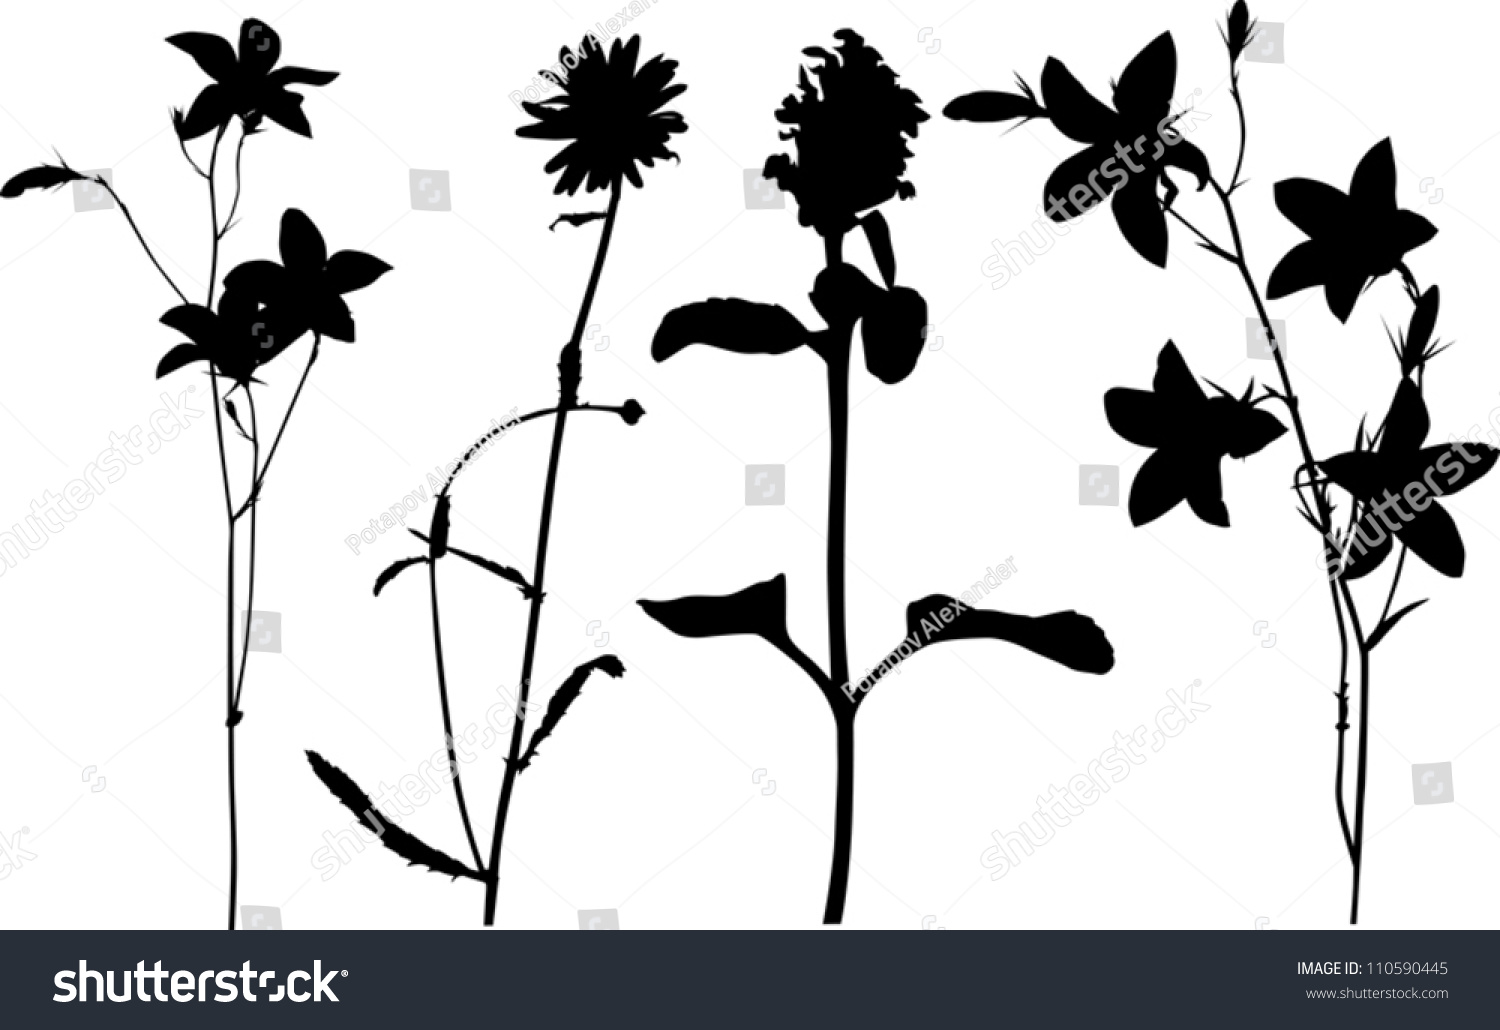 Wildflower Silhouette Vector | www.imgkid.com - The Image ...